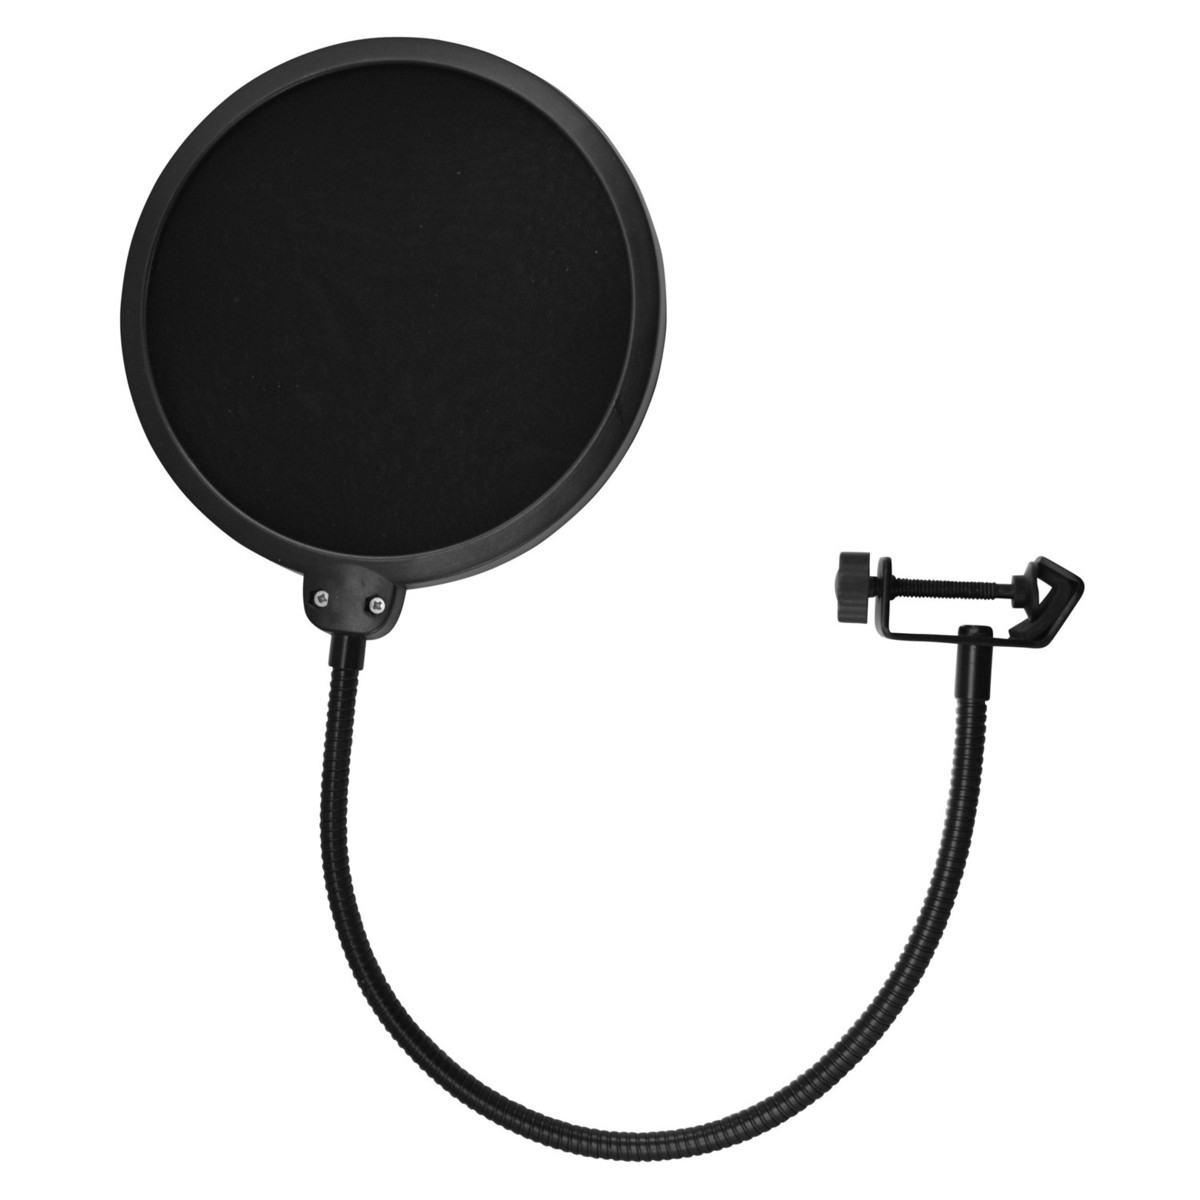 Tie Studio Pop Filter At Gear4music Equalizers Crossovers Wiring Kits Caps And More Click On Picture To Popfilter Shield View 1 Loading Zoom